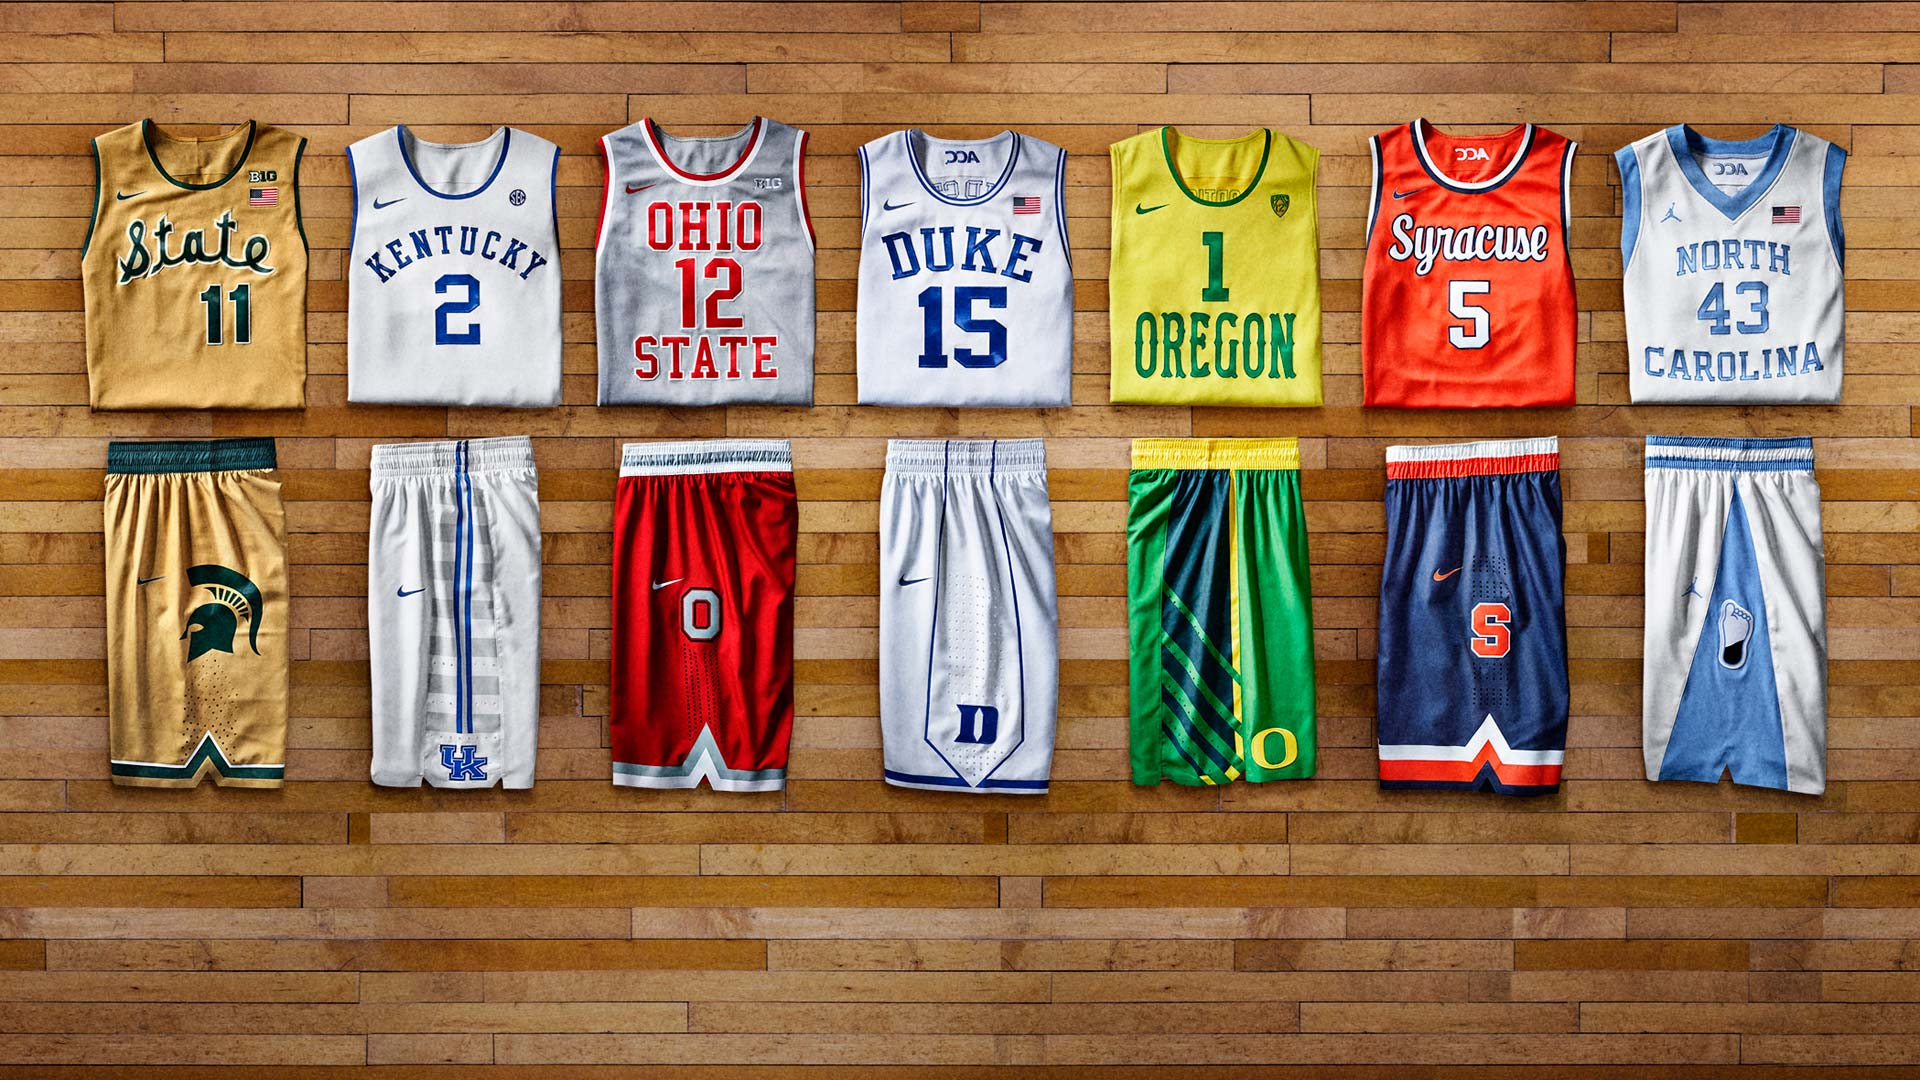 Nike rolls out retro uniforms for Duke, Kentucky, UNC ...